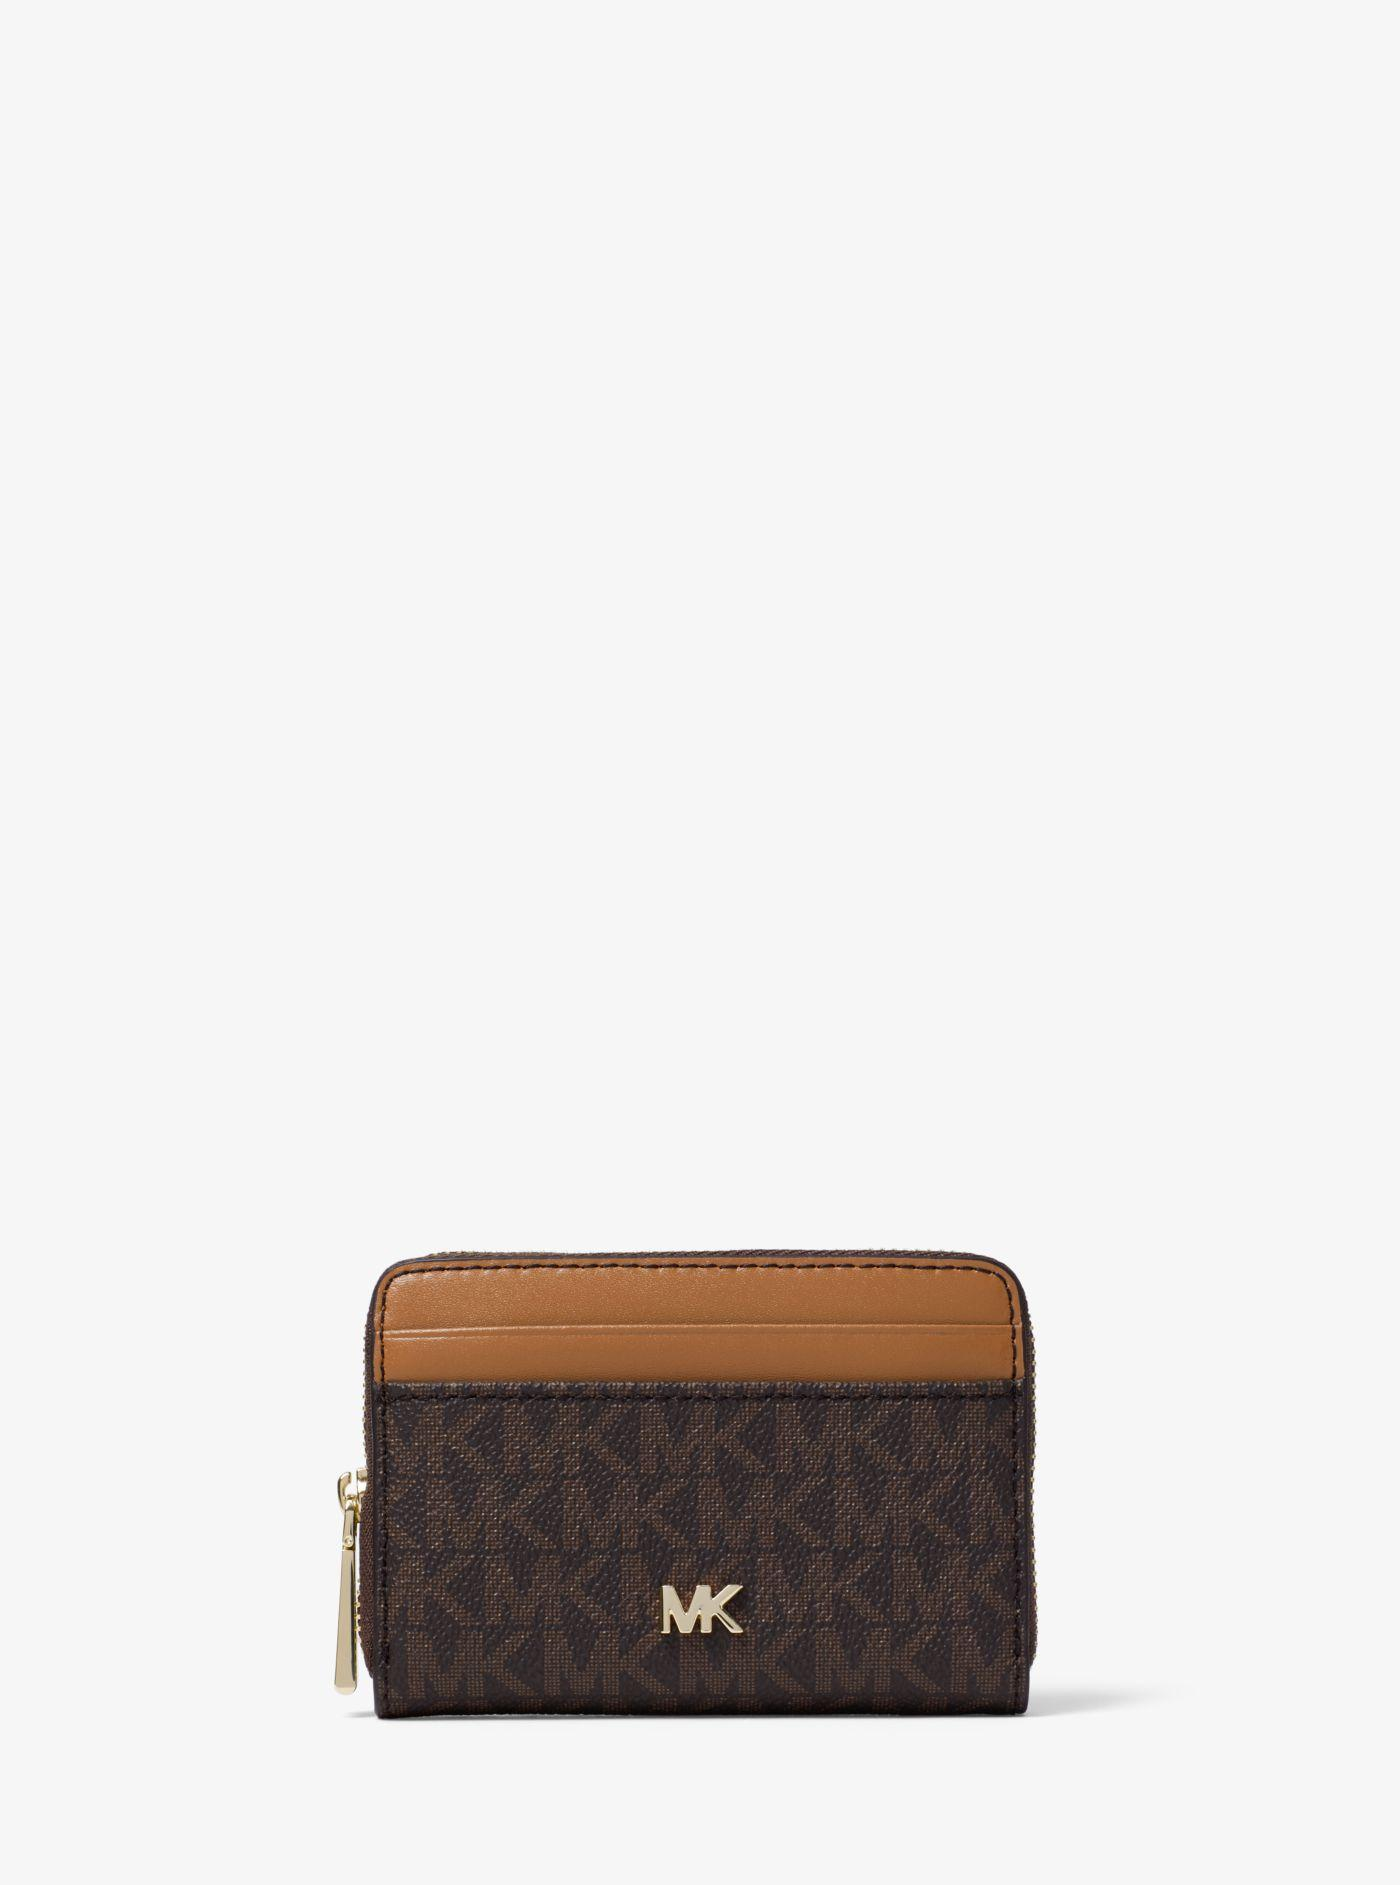 c8652c4cac0d Lyst - Michael Kors Small Logo And Leather Wallet in Brown